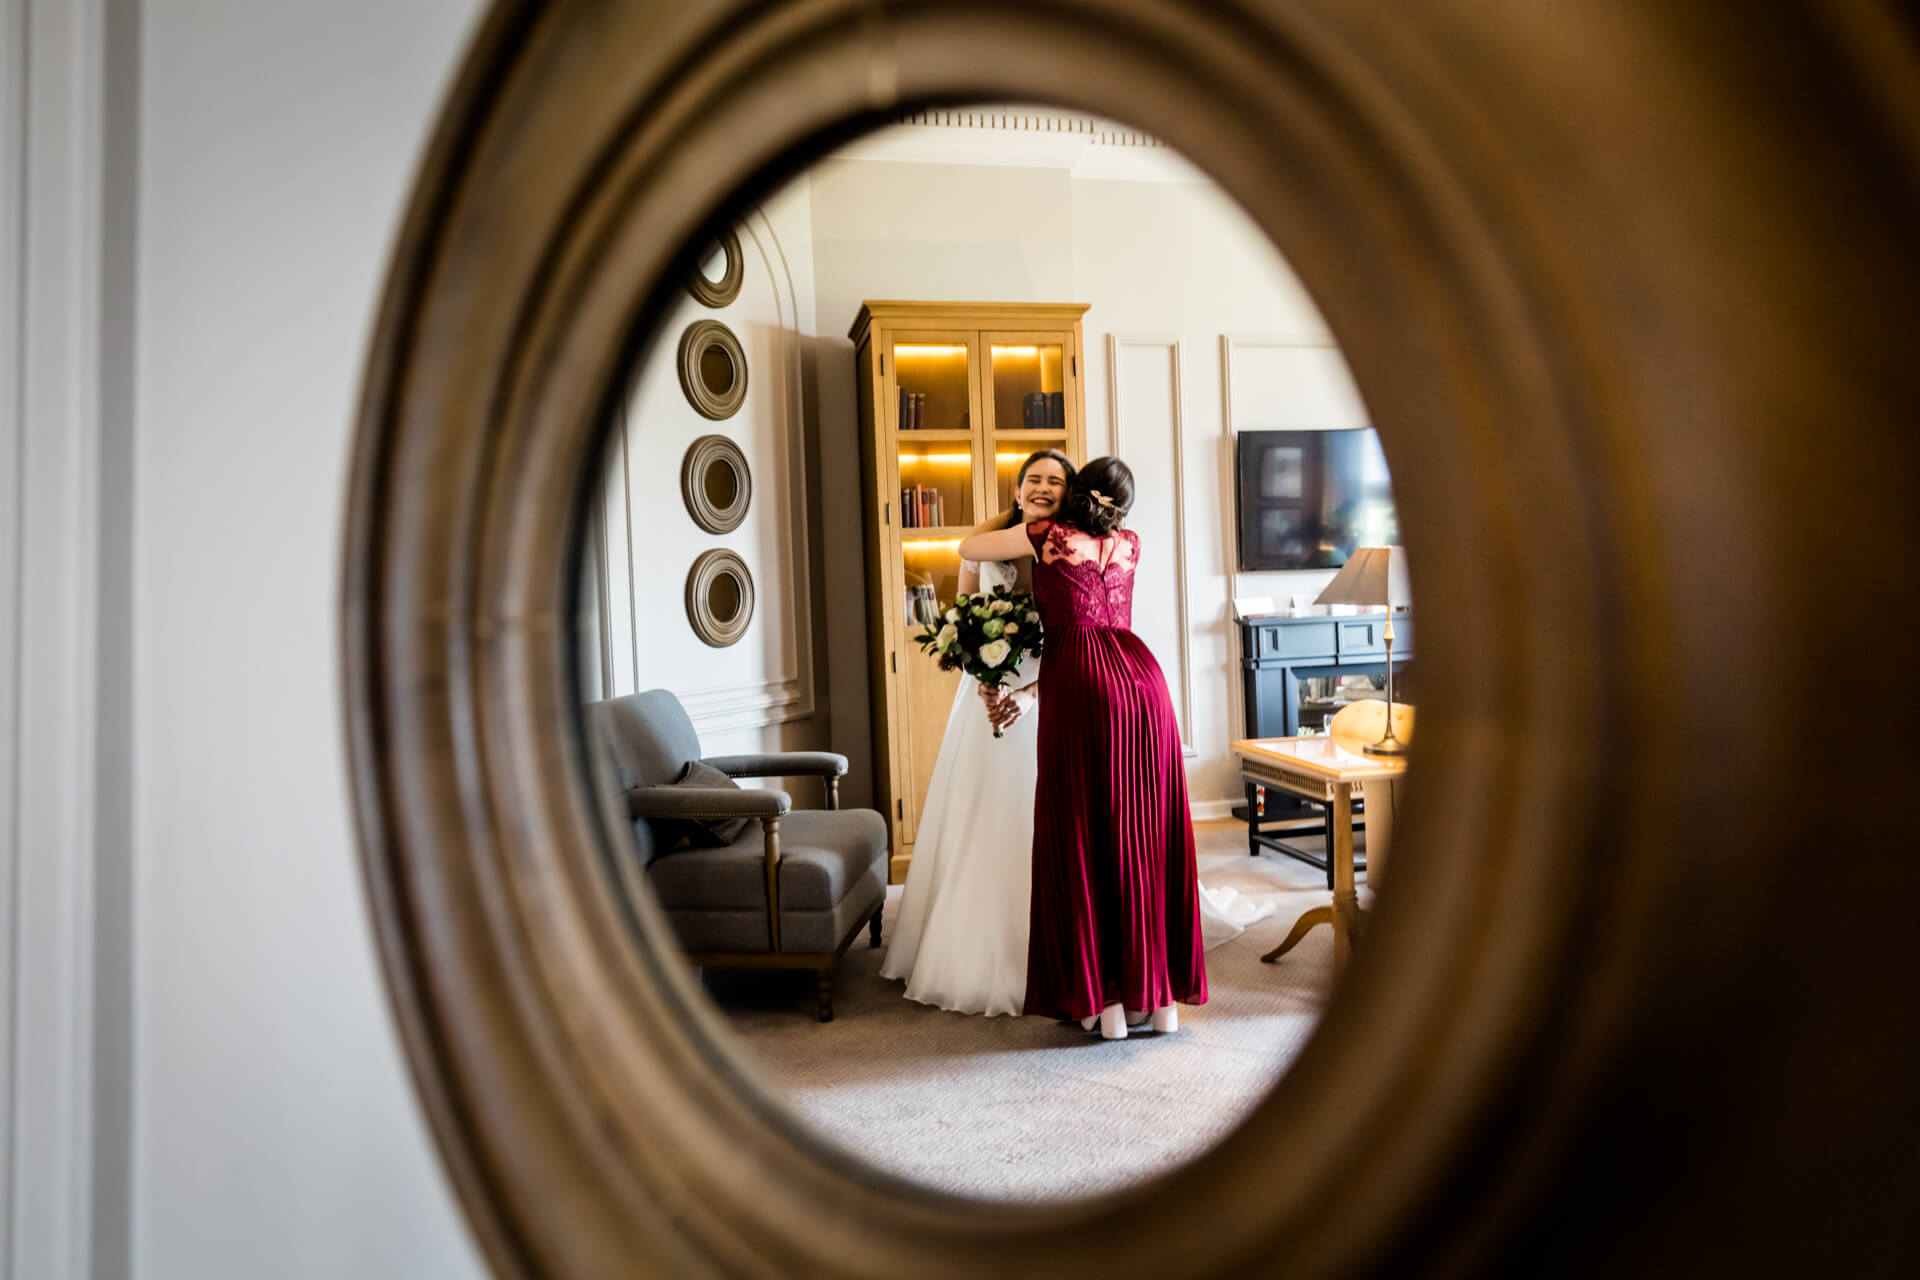 reflection in a mirror showing a bridesmaid hugging the bride